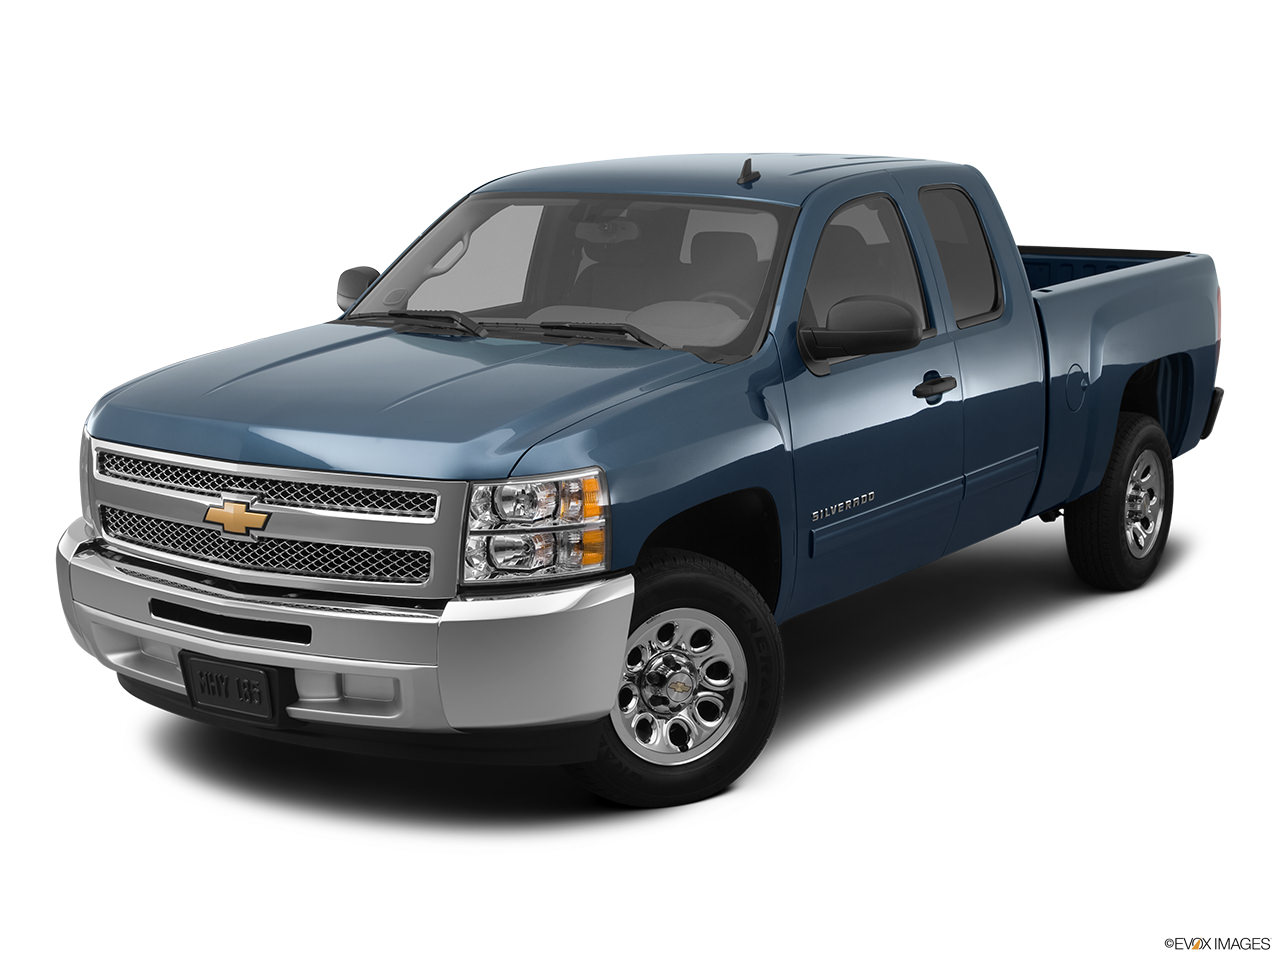 2012 Toyota Tundra Vs 2012 Chevrolet Silverado Which One Should I